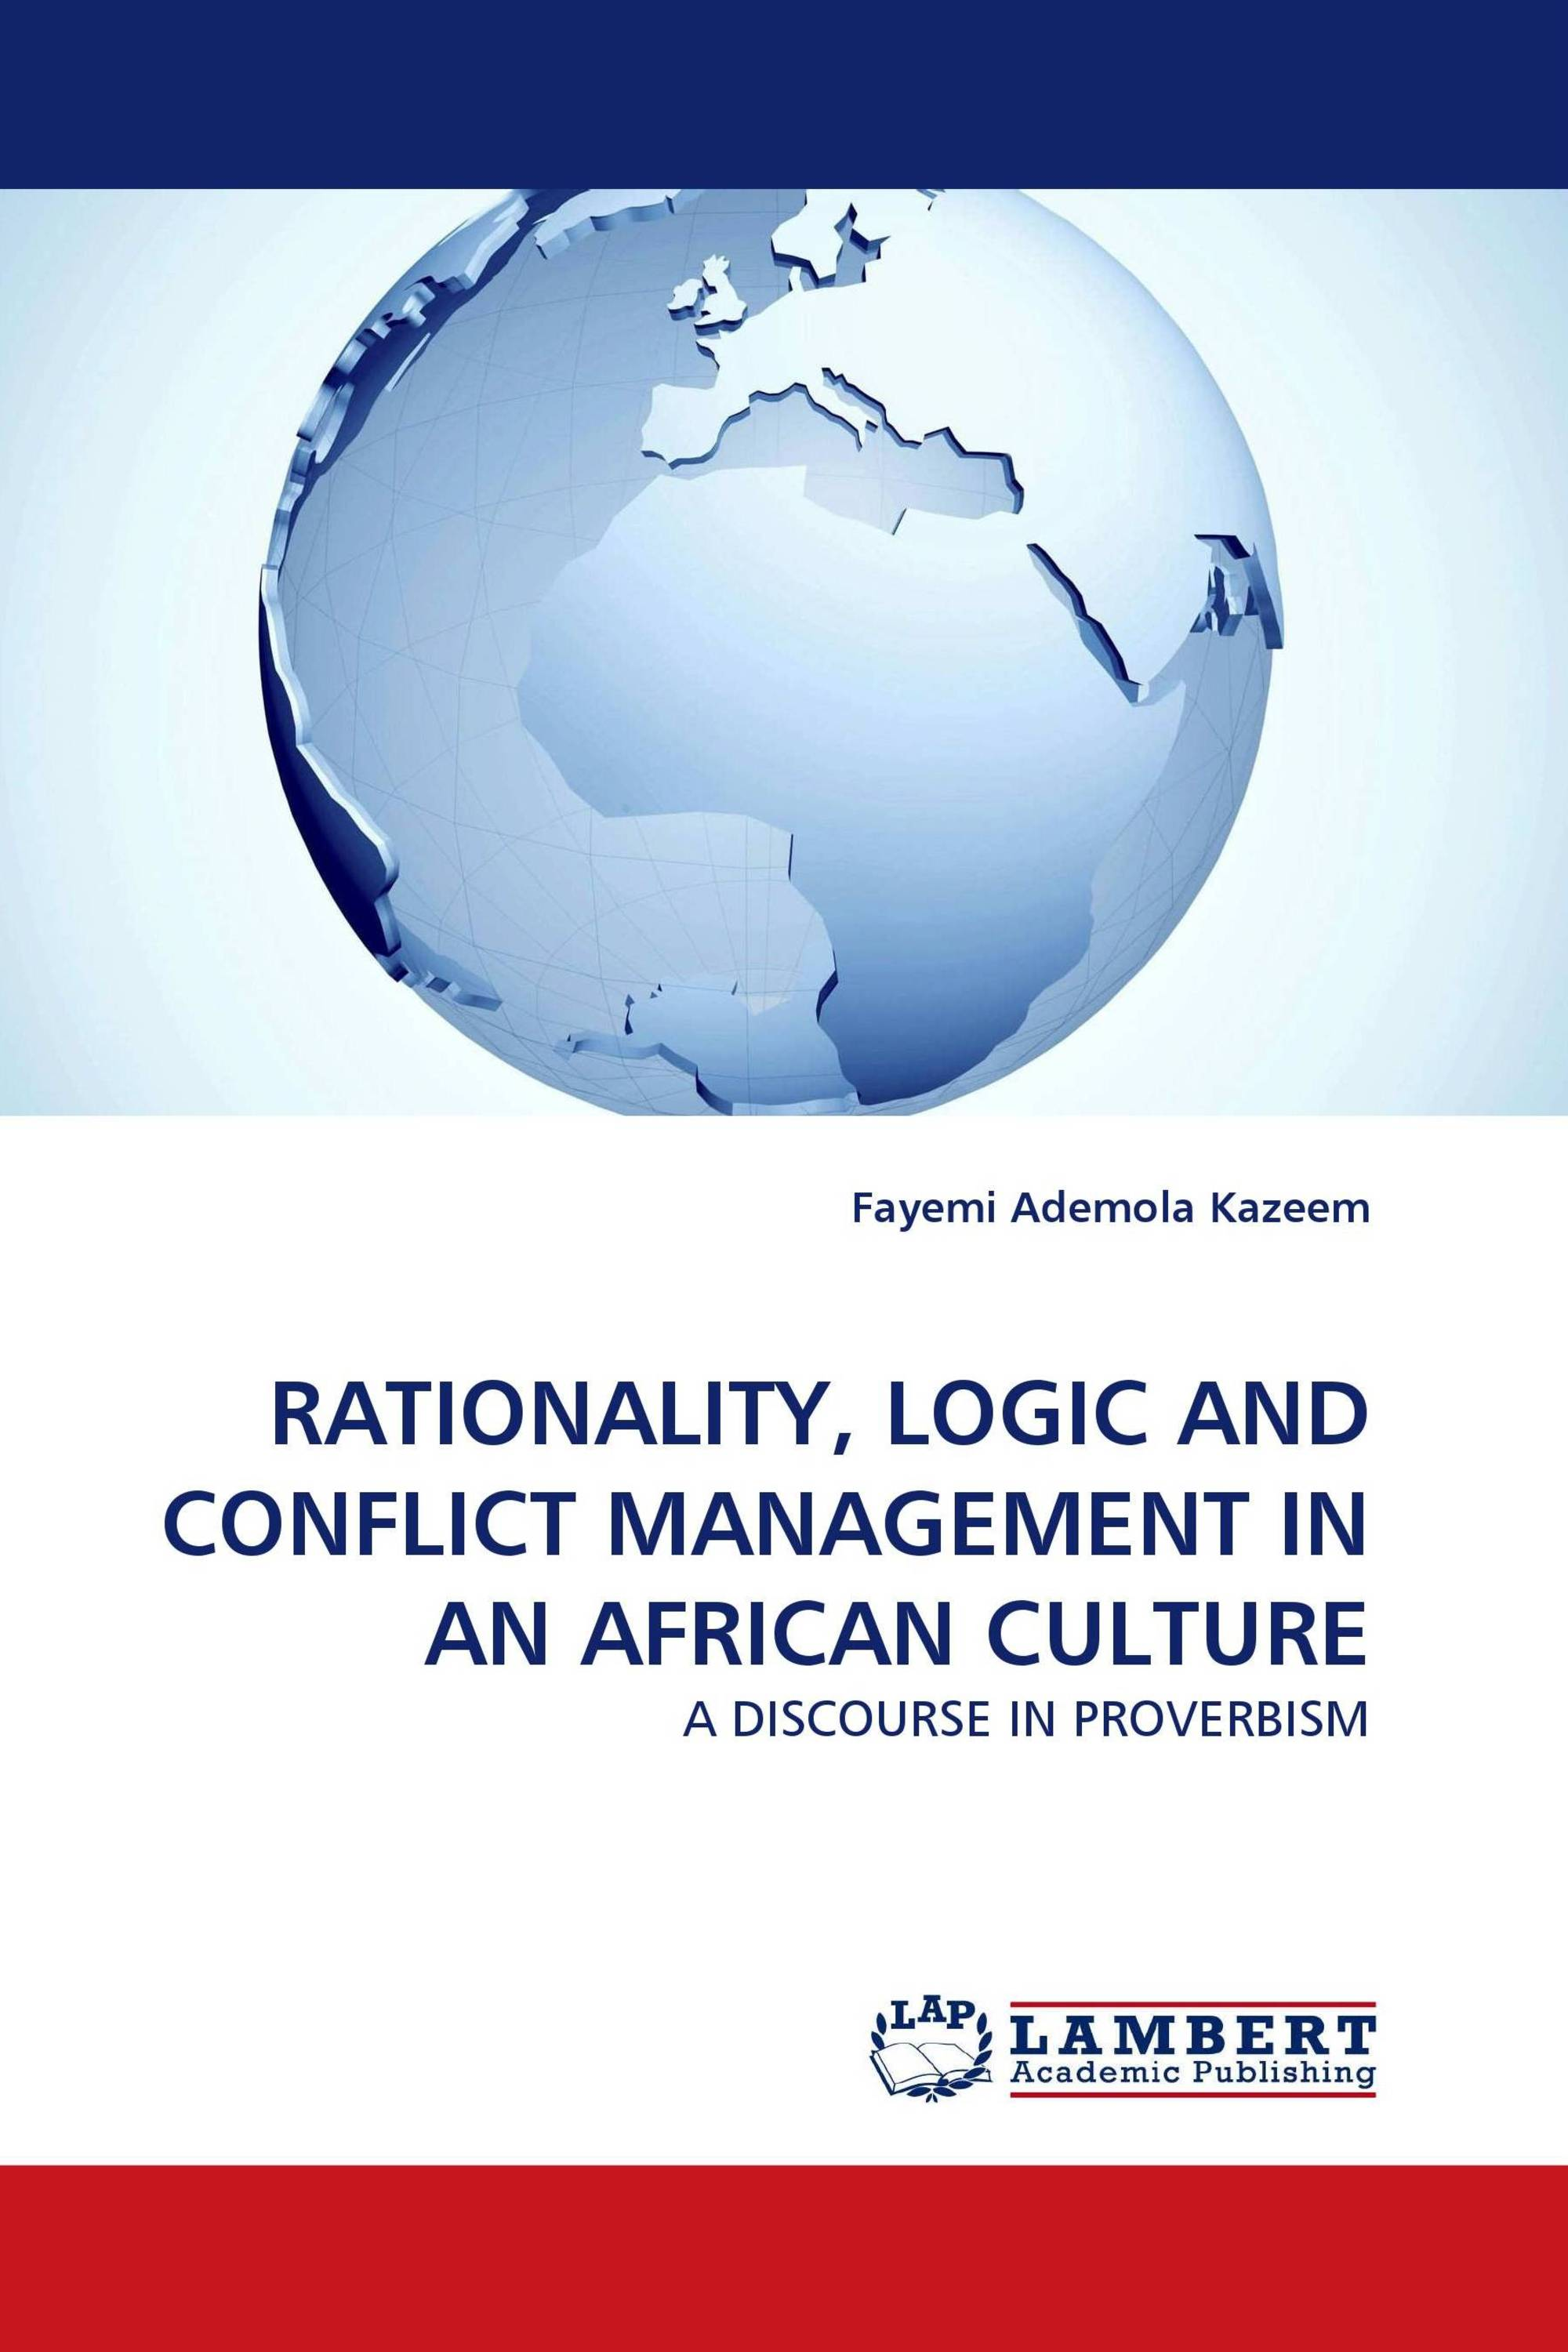 RATIONALITY, LOGIC AND CONFLICT MANAGEMENT IN AN AFRICAN